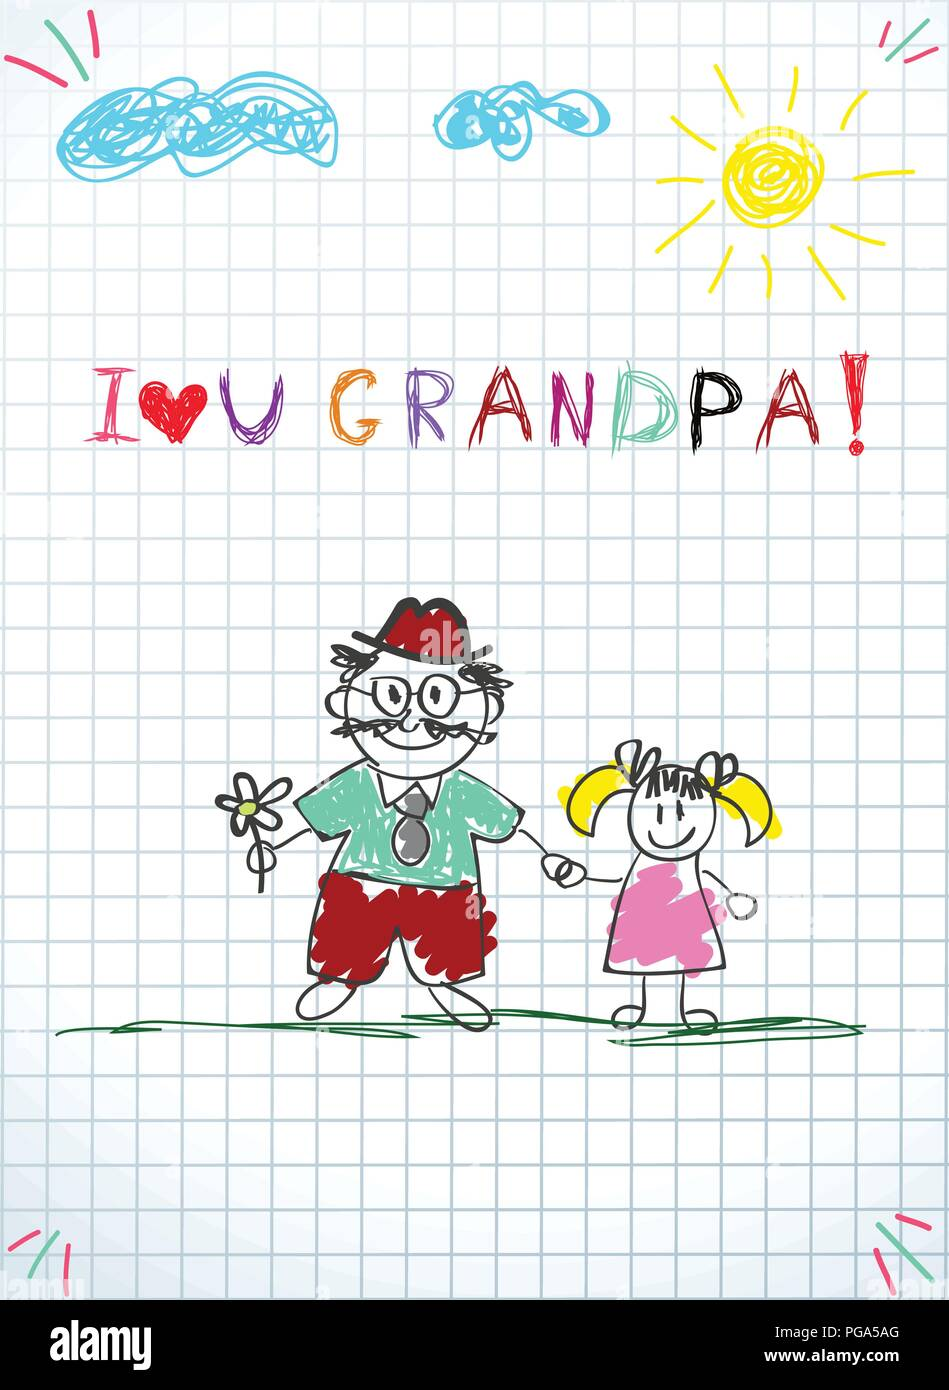 Children Colorful Pencil Drawings Vector Illustration Of Granddad